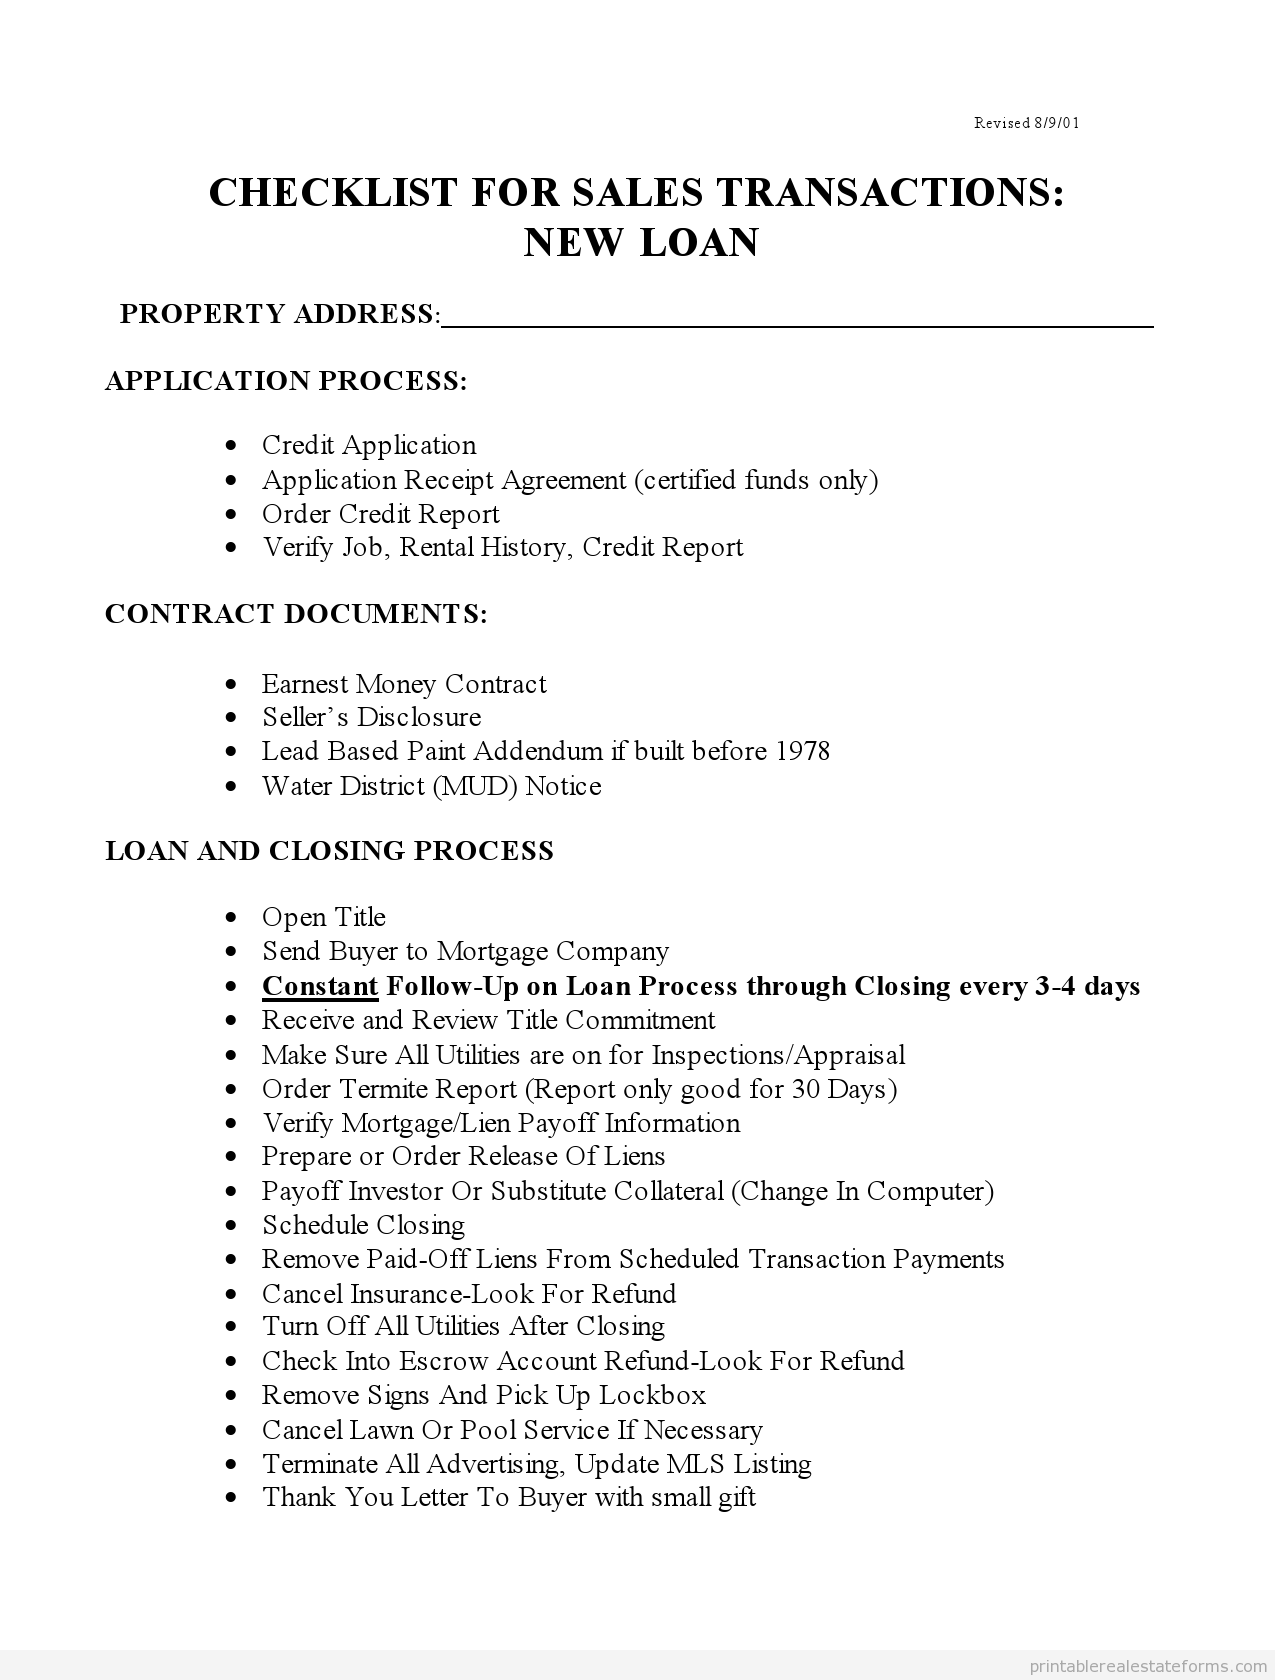 Printable Checklist For Sales With New Loans Form